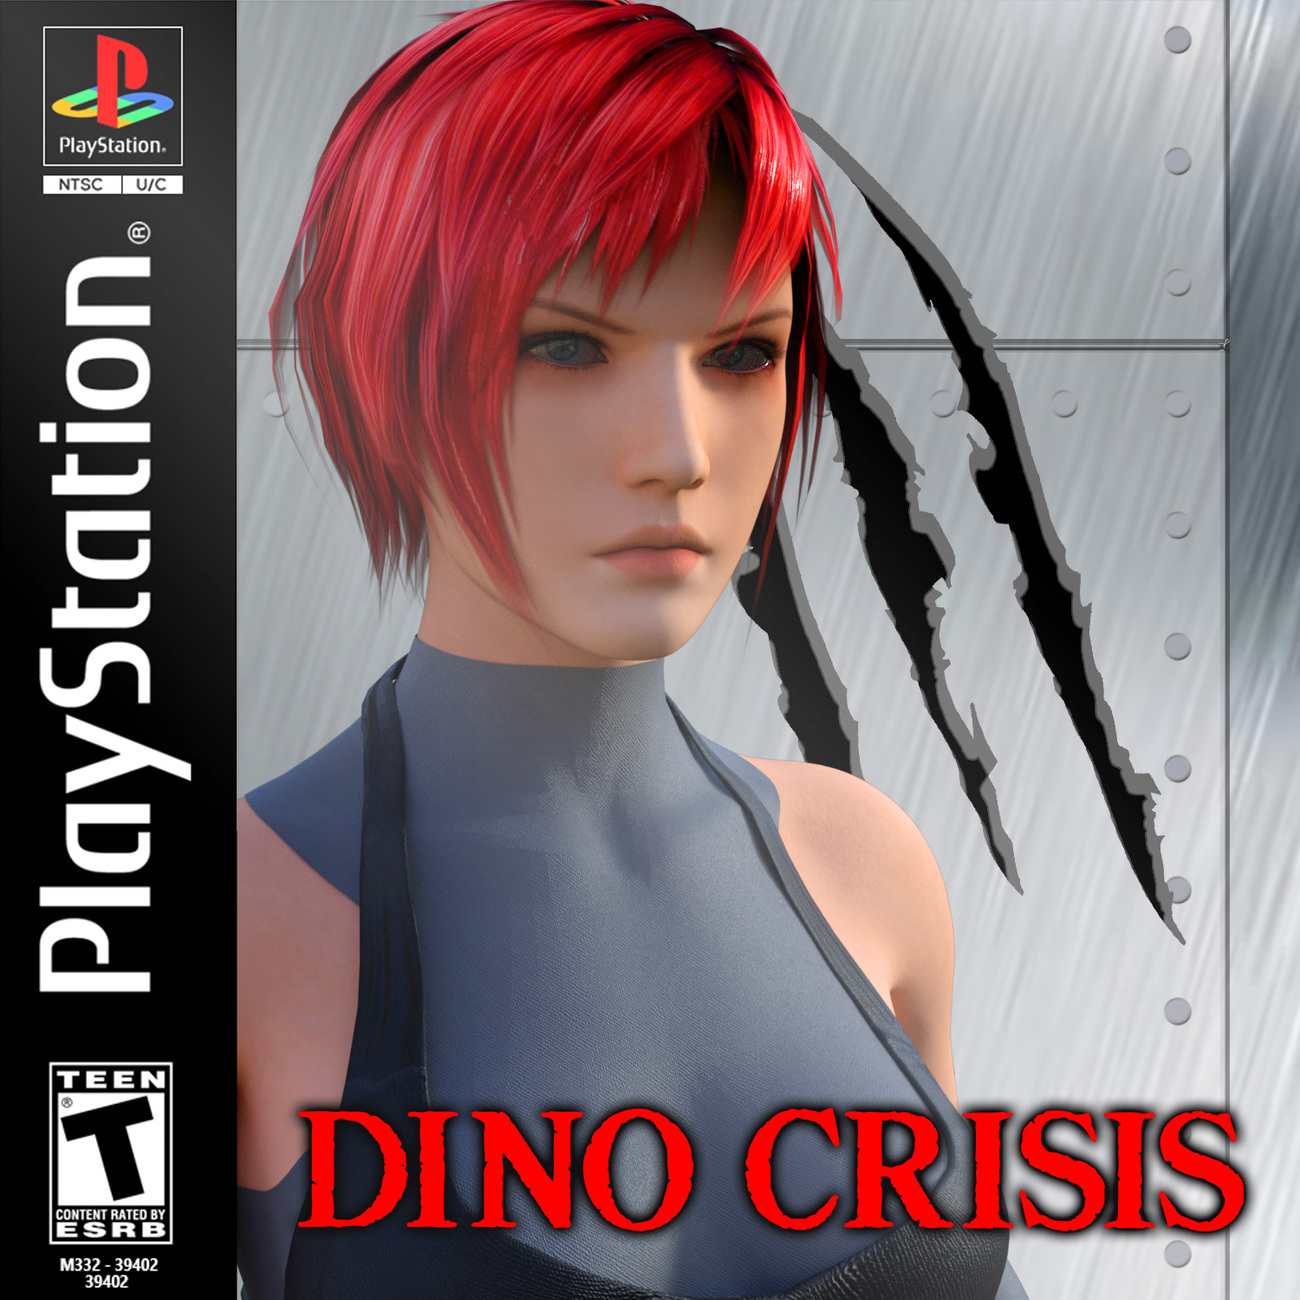 Dino Crisis homage by lstowe